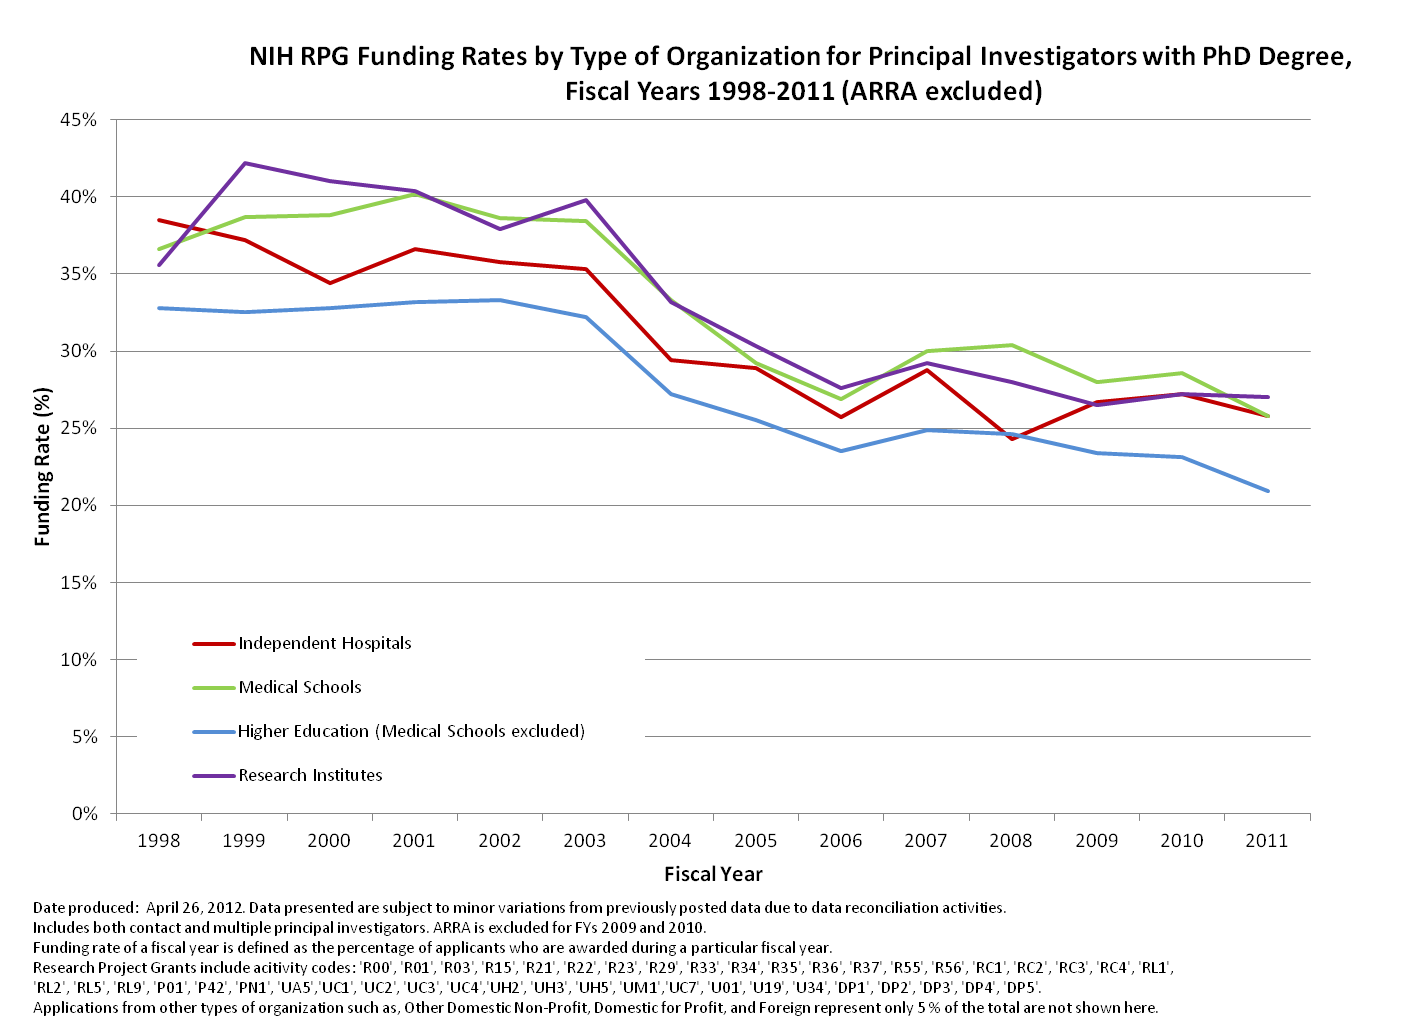 NIH RPG Funding Rates by Type of Organization for Principal Investigators with PhD Degree, 1998-2011